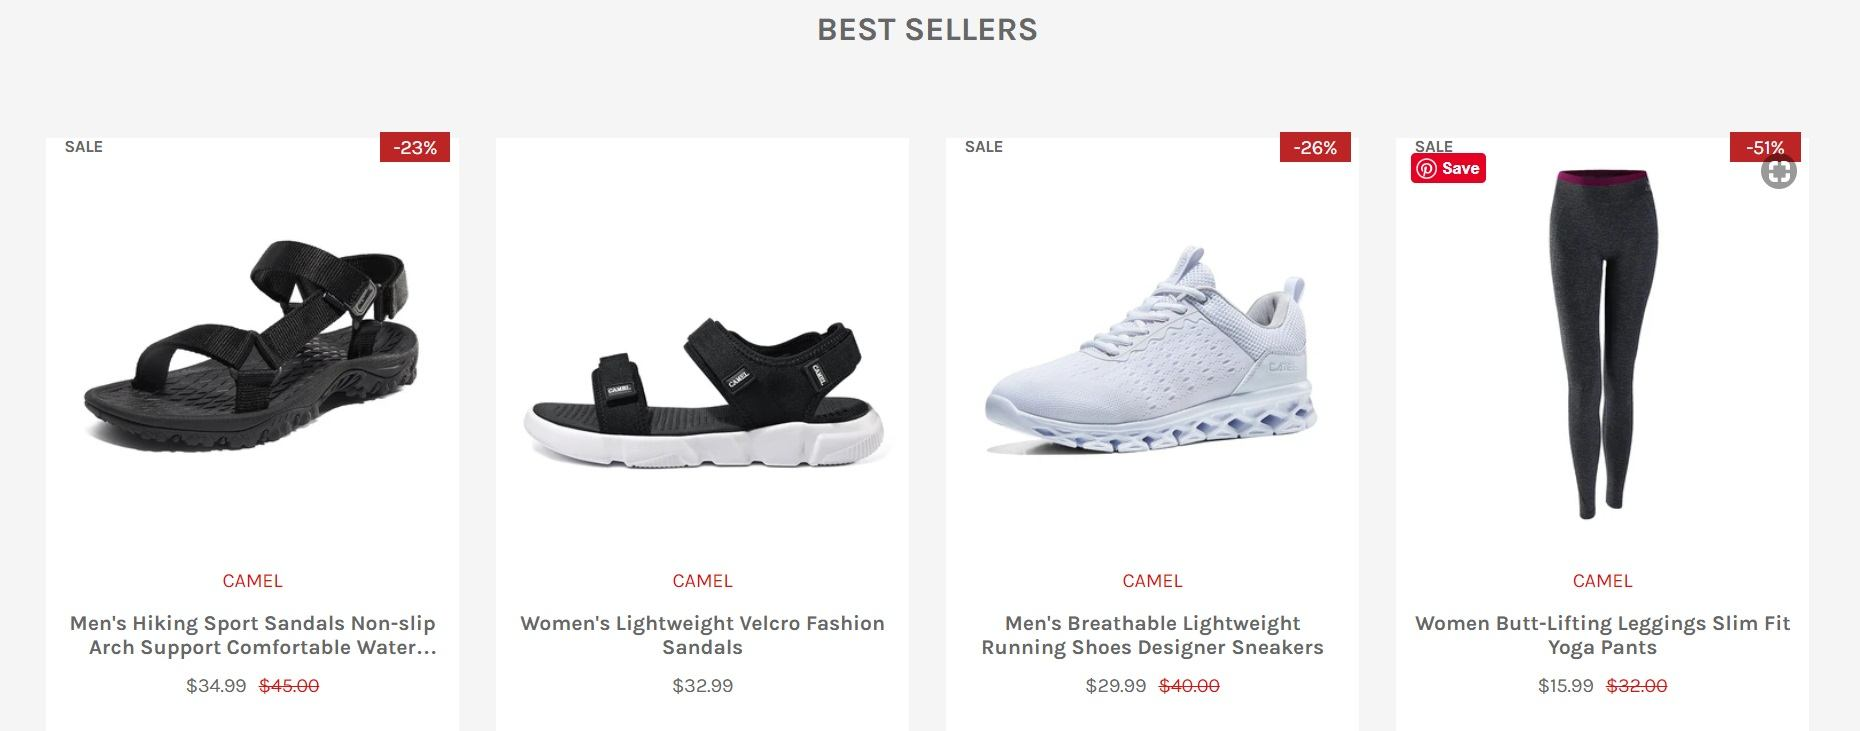 The Camel Store Best Sellers